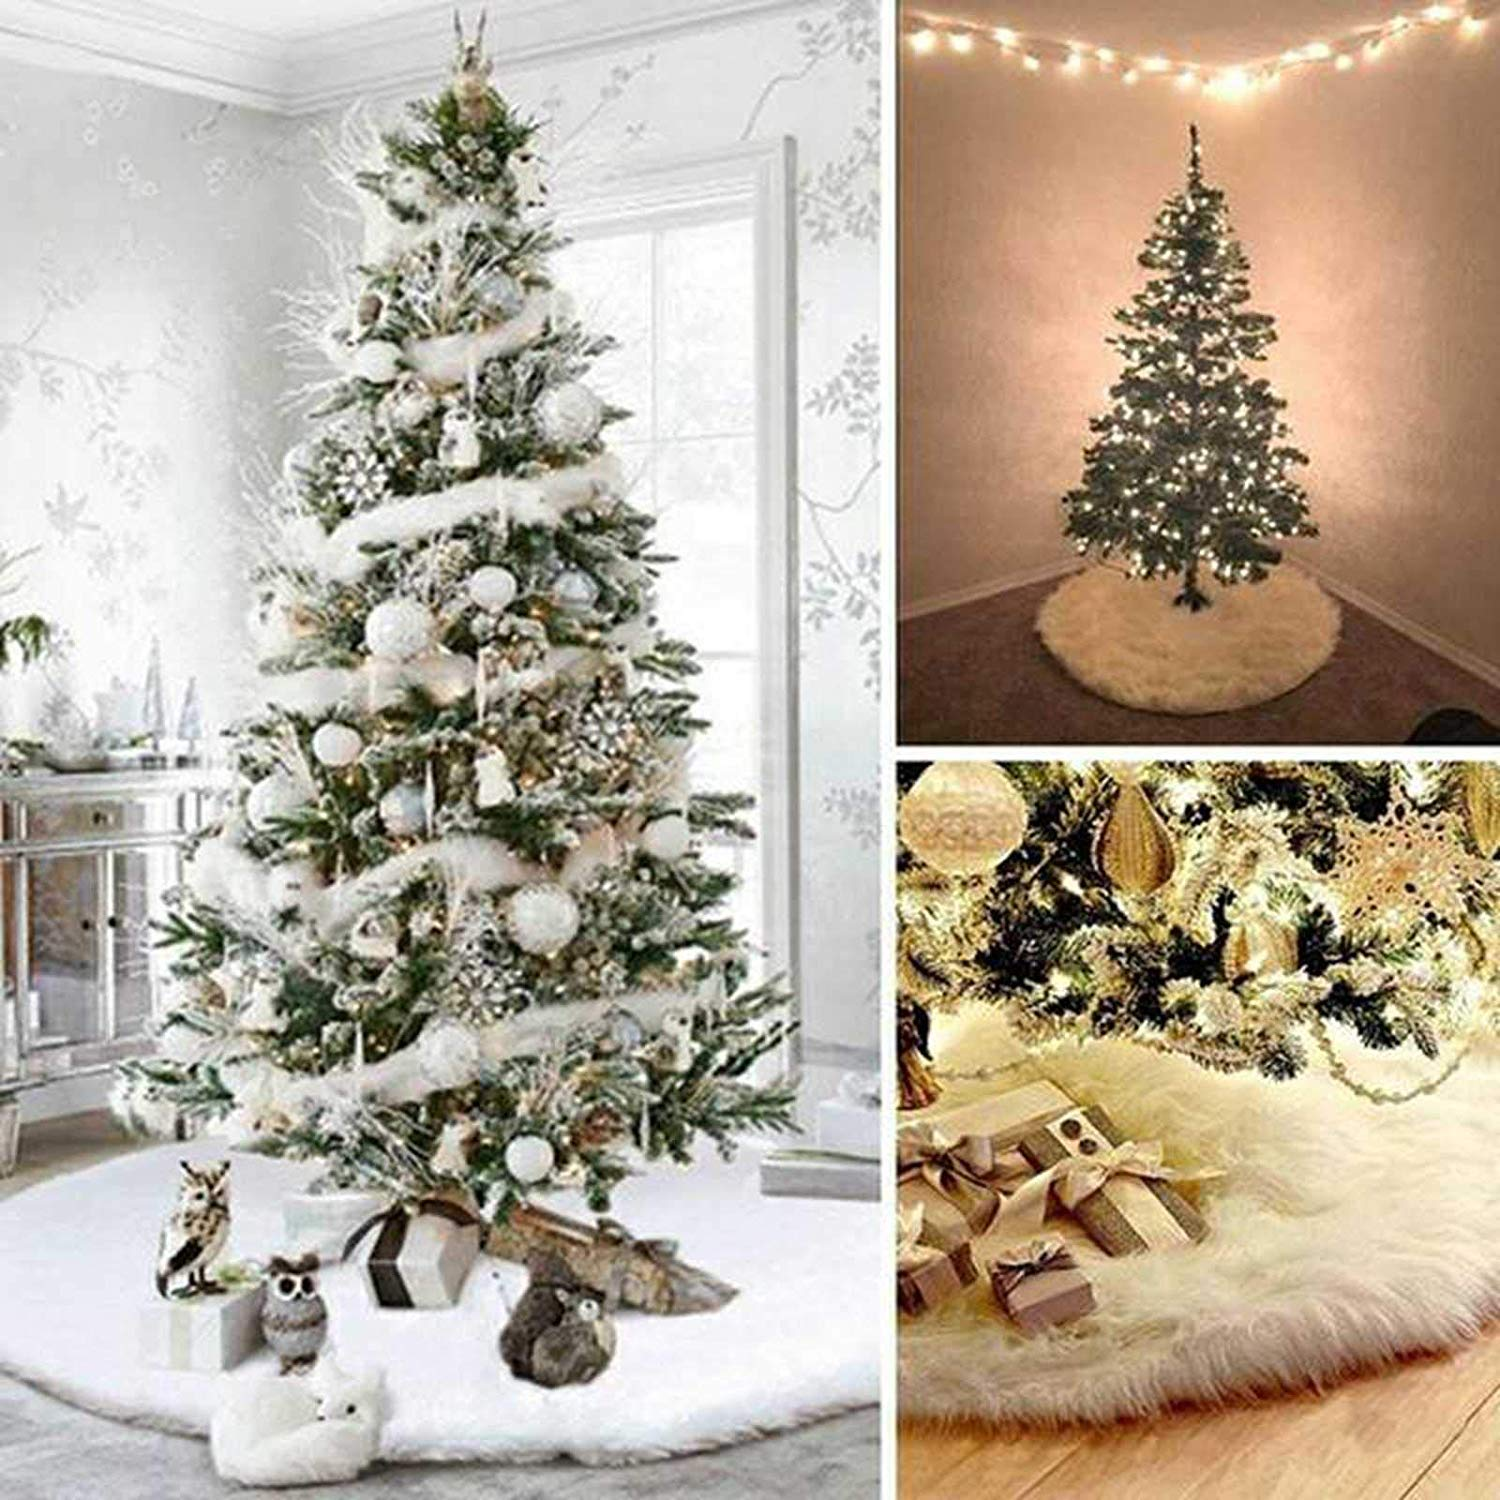 Cleana Arts Premium Faux Sheepskin Christmas Tree Skirt for